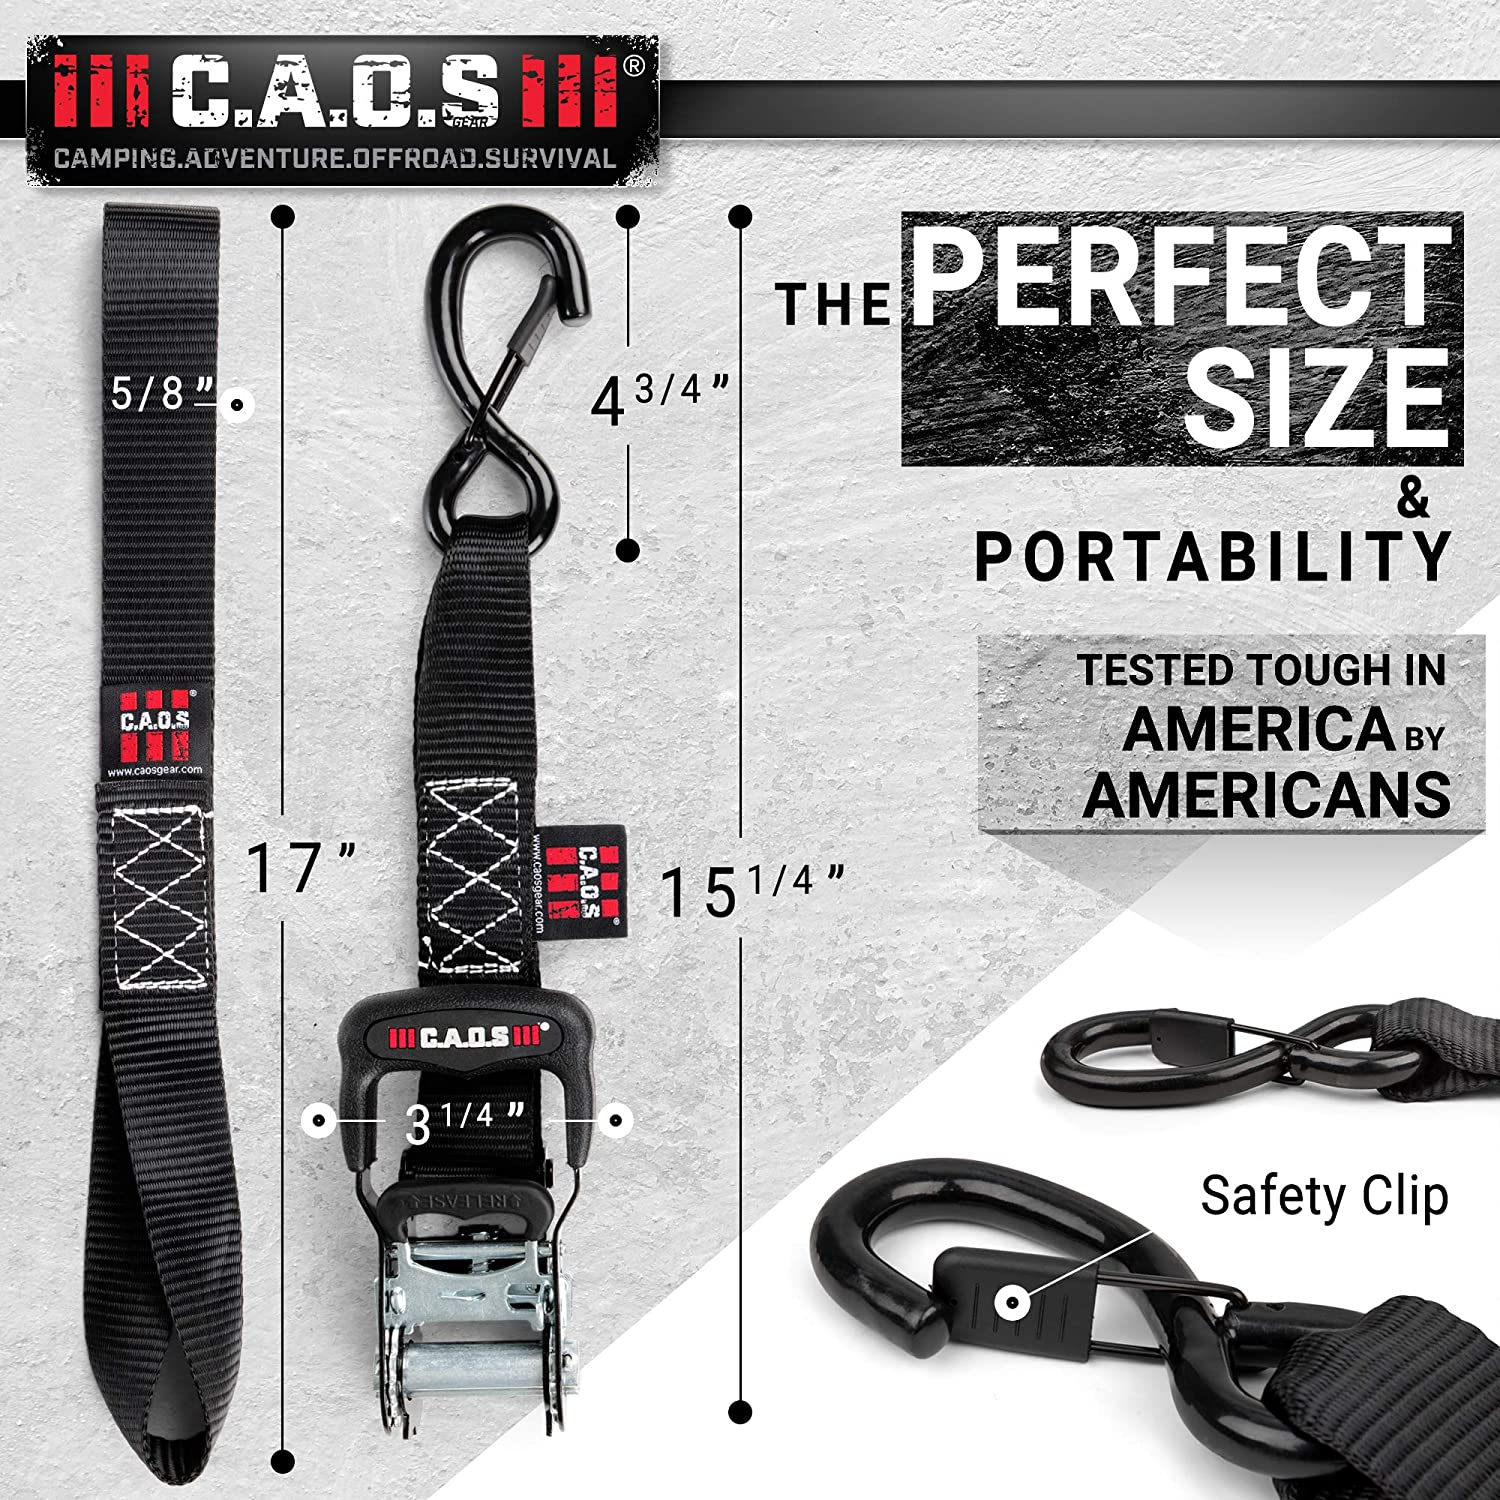 CAOS Gear Motorcycle Ratchet Straps, Pack of 2, Black, to Secure Car, Truck, ATV - Premium, Heavy-Duty Tie Down Straps for Trucks, made with Coated Steel, Chromoly - Durable Soft Loop Tie Down Kit (2): Automotive